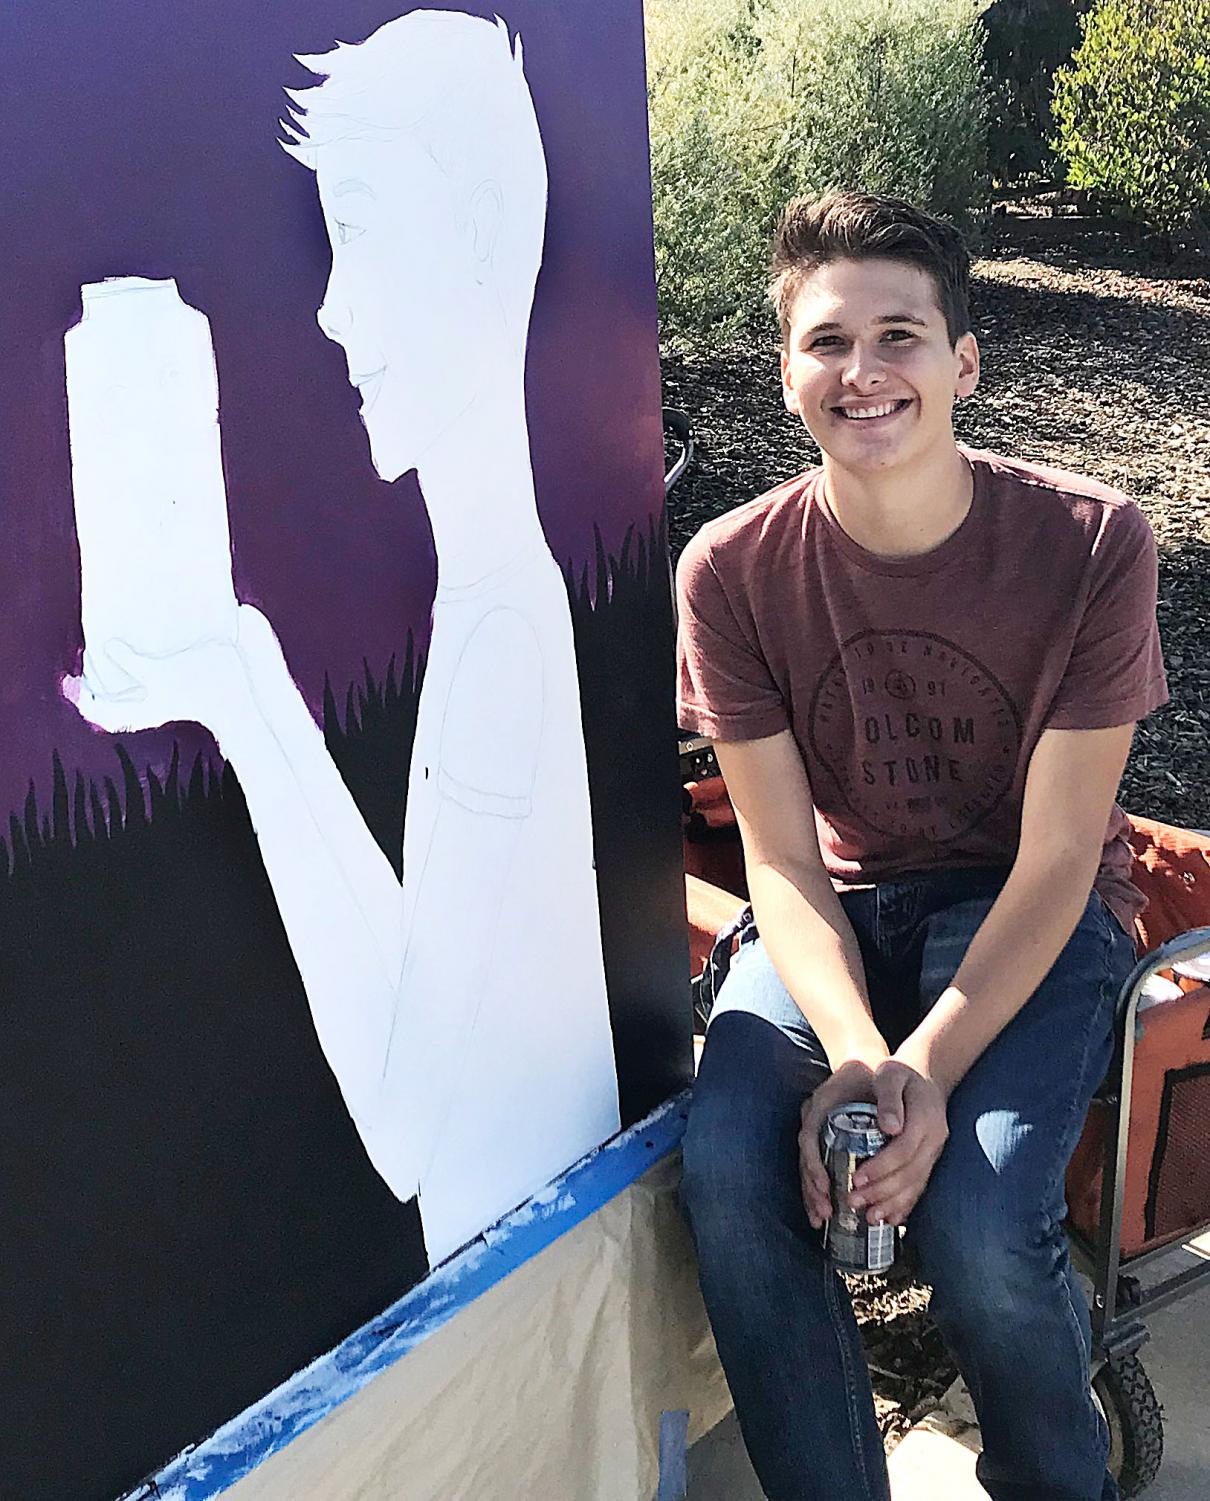 LMC student artist Matthew D'Amico in front of his painted utility box.